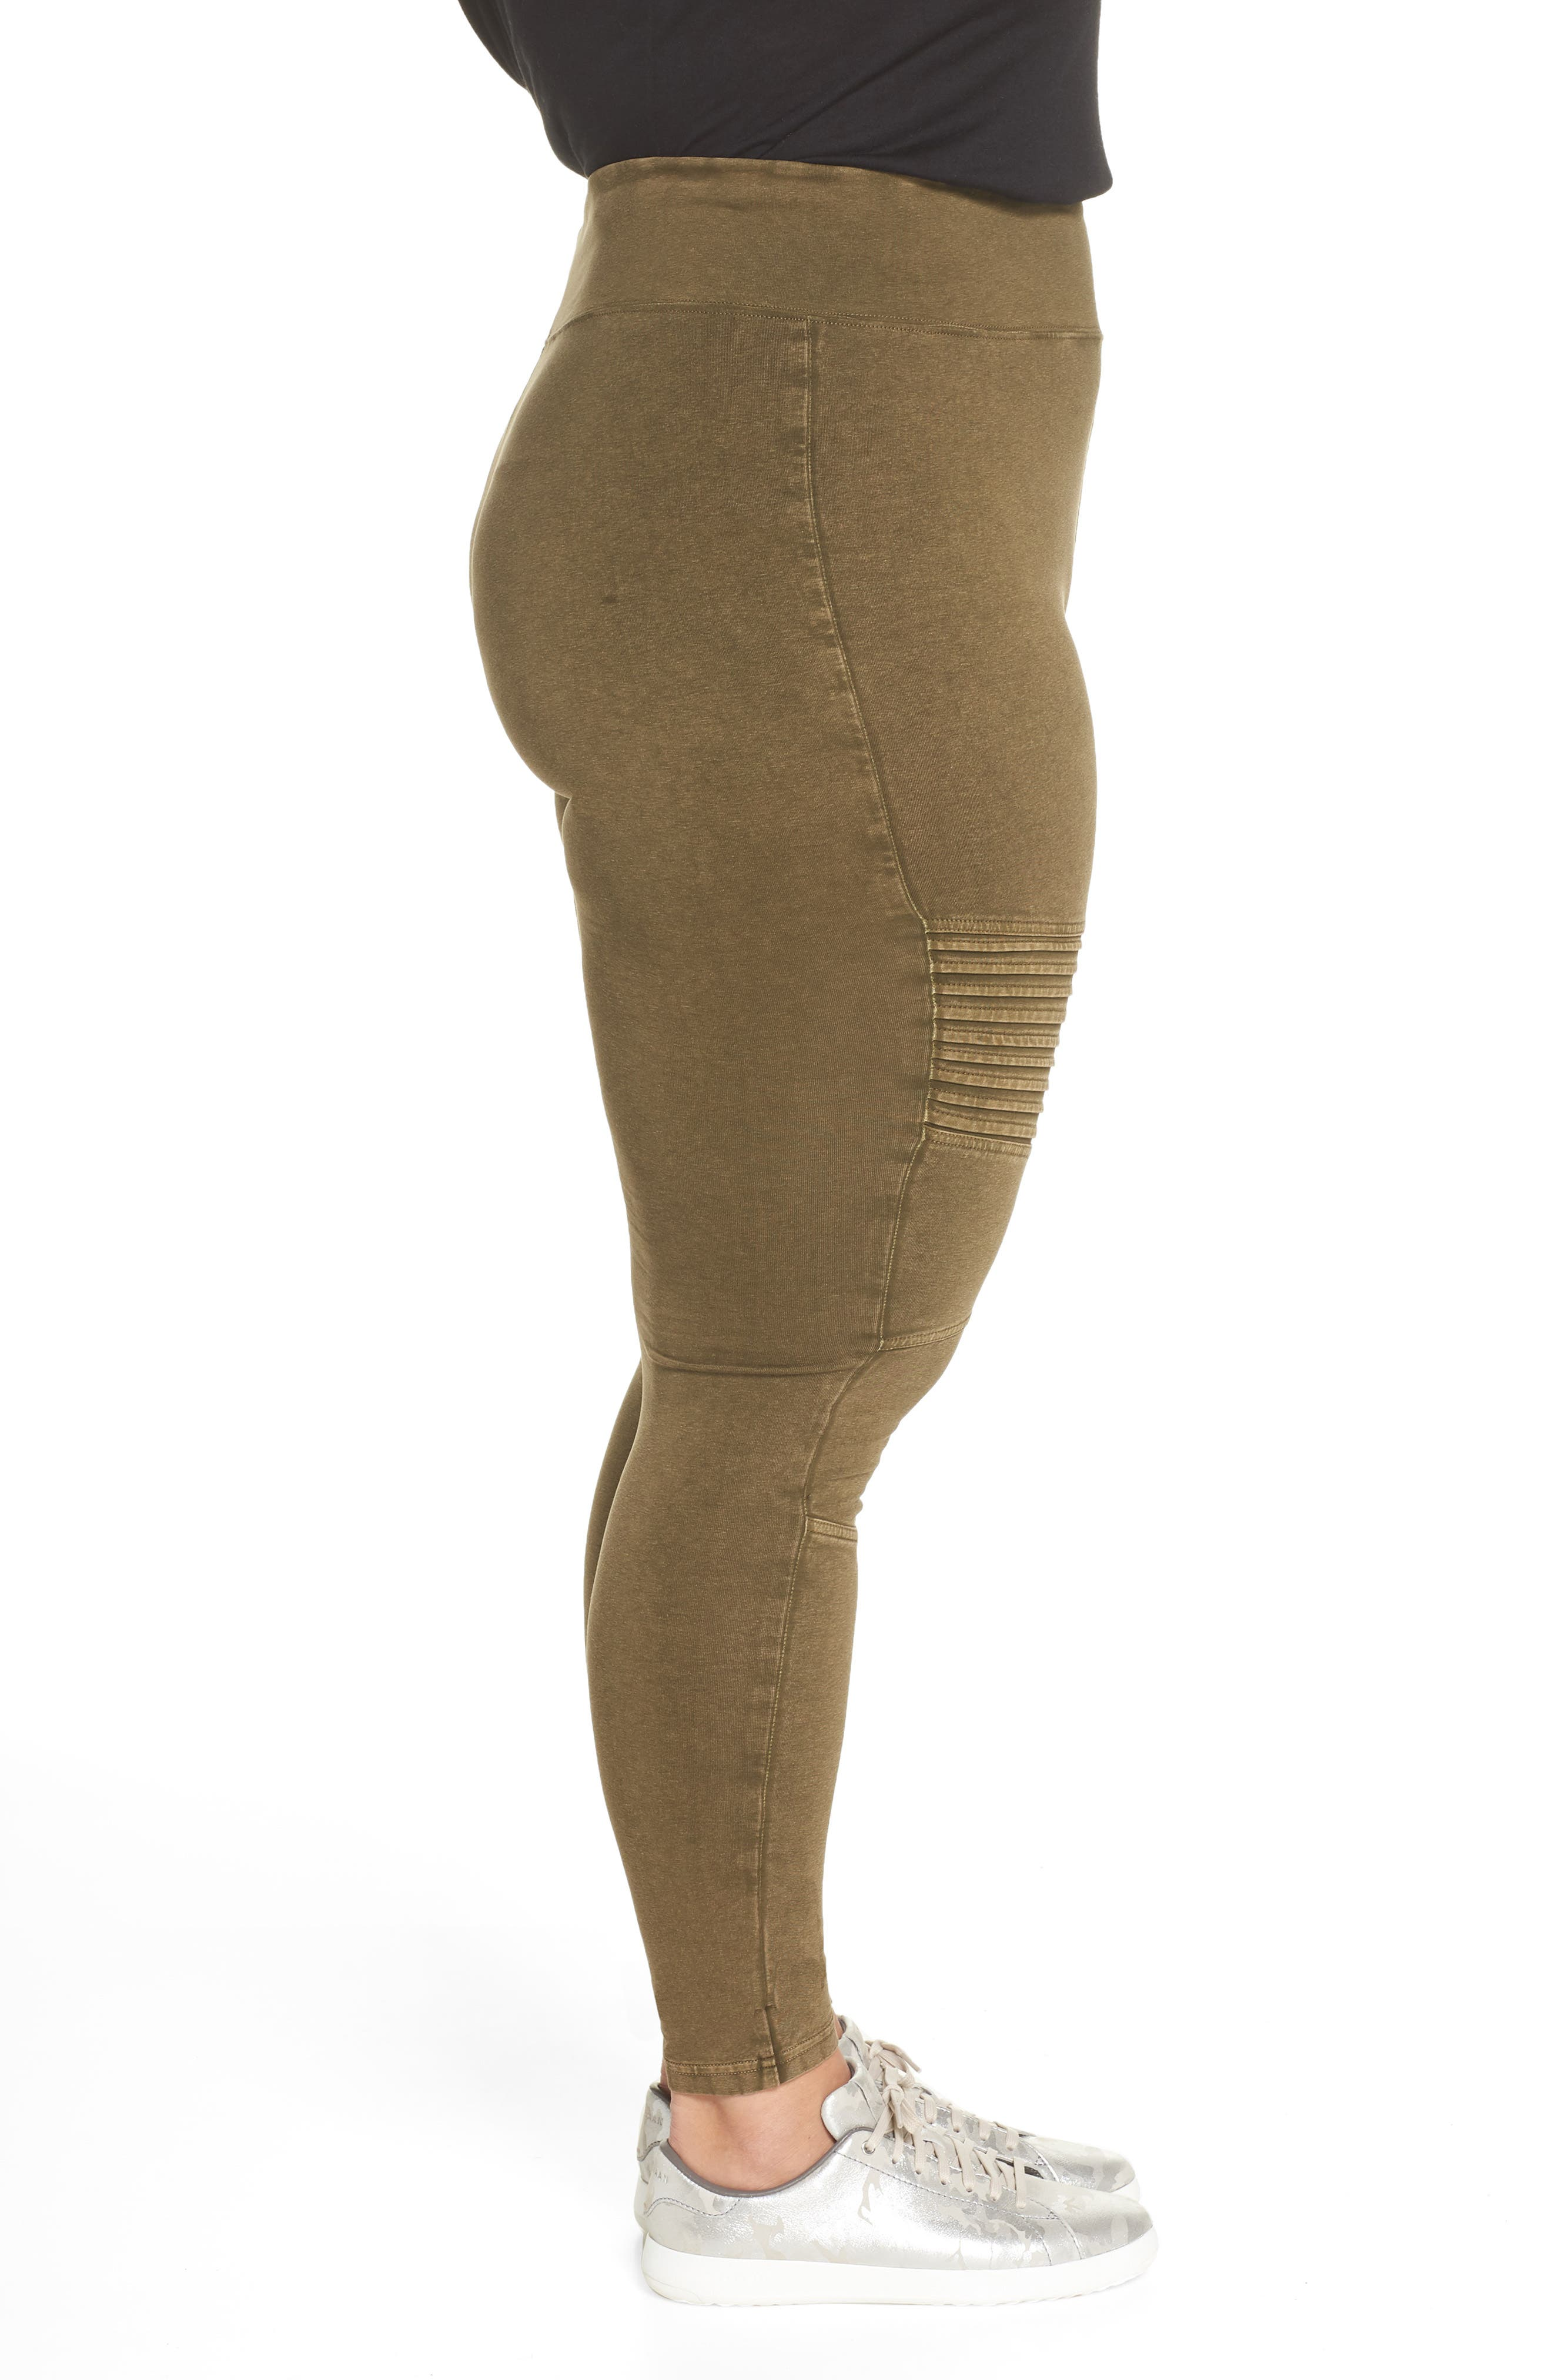 Washed Moto Leggings,                             Alternate thumbnail 10, color,                             OLIVE DARK